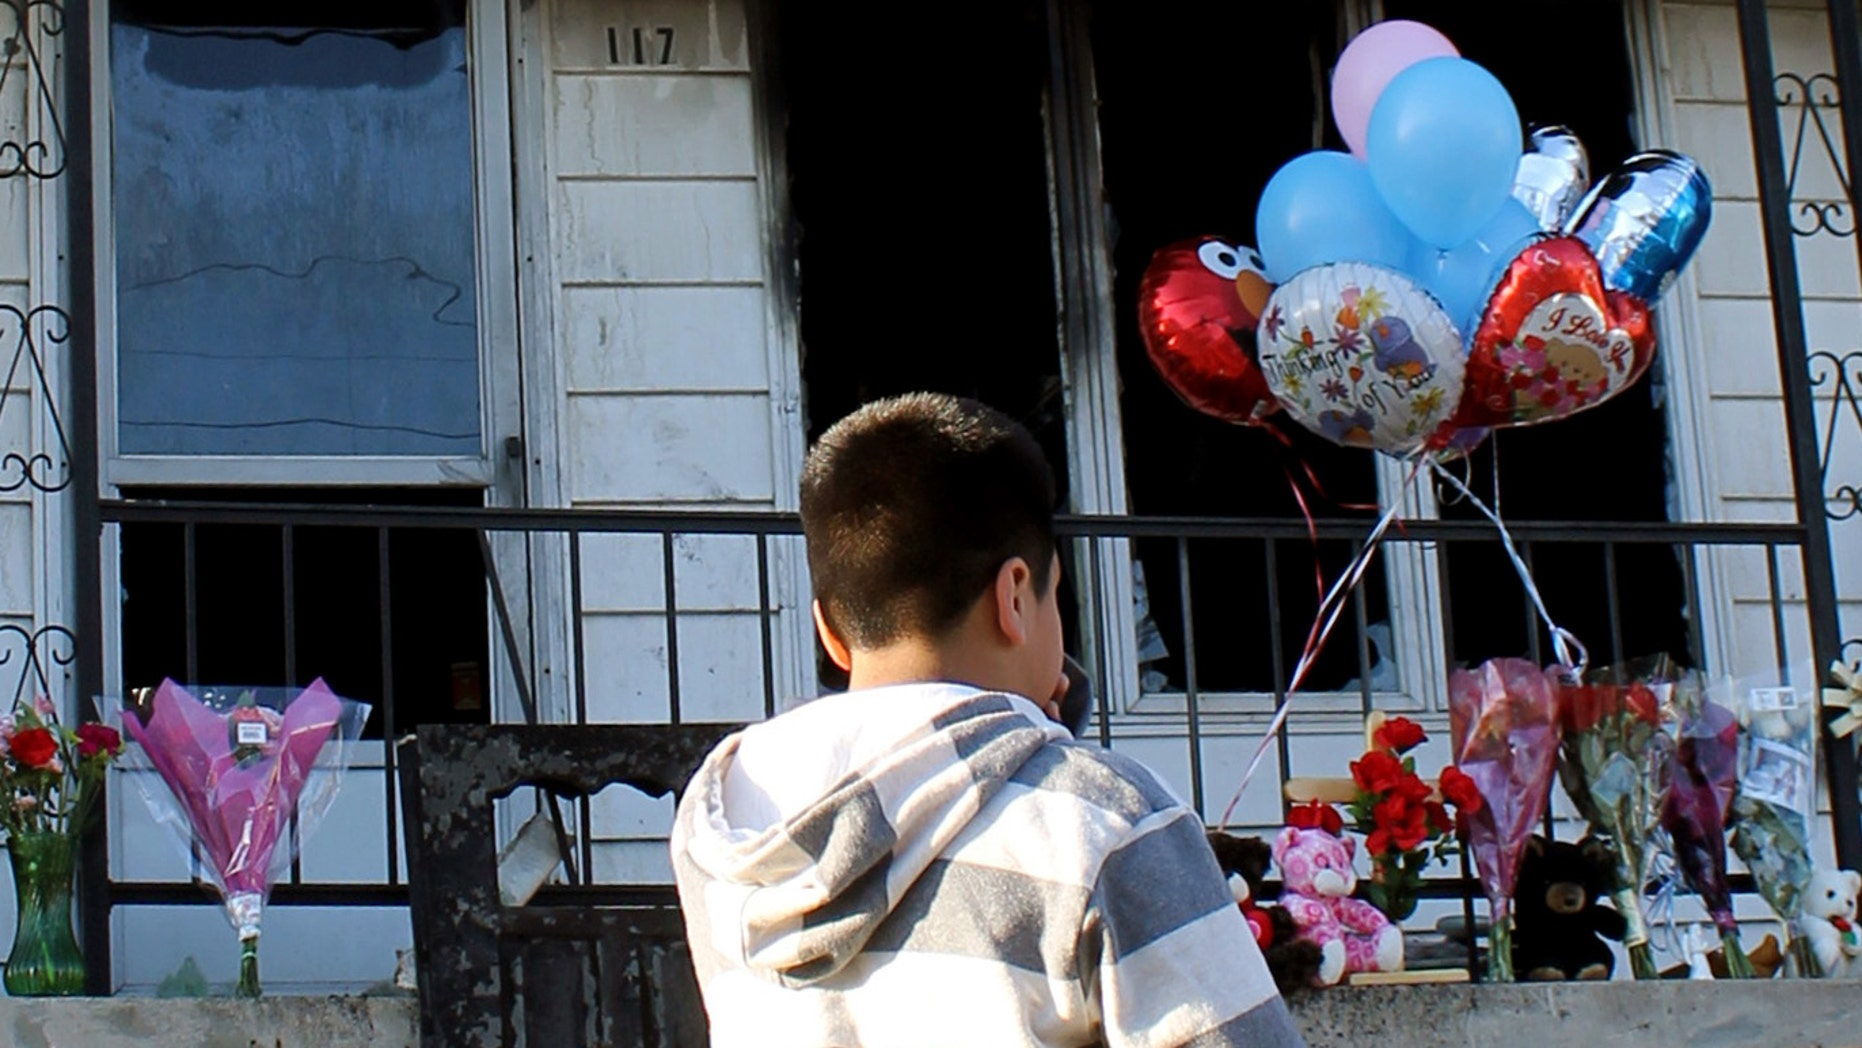 Javier Alcala stands in front of the home of his friends, Christian Sanchez and Damian Lopez, who were victims of a deadly fire that occurred on Tuesday, March 27, 2012, in Shenandoah, Pa. The fire destroyed five row homes, killing a woman and three children in one house while a fourth child managed to escape out a second floor window as the flames closed in, fire officials said. The Schuylkill County coroner's office identified the victims as Tiffany Sanchez, 28; her 10-year-old son Christian; and her two nephews, 10-year-old Damien Lopez and 7-month-old Aziah Hernandez. (AP Photo/Hazleton Standard-Speaker, Jamie Pesotine)